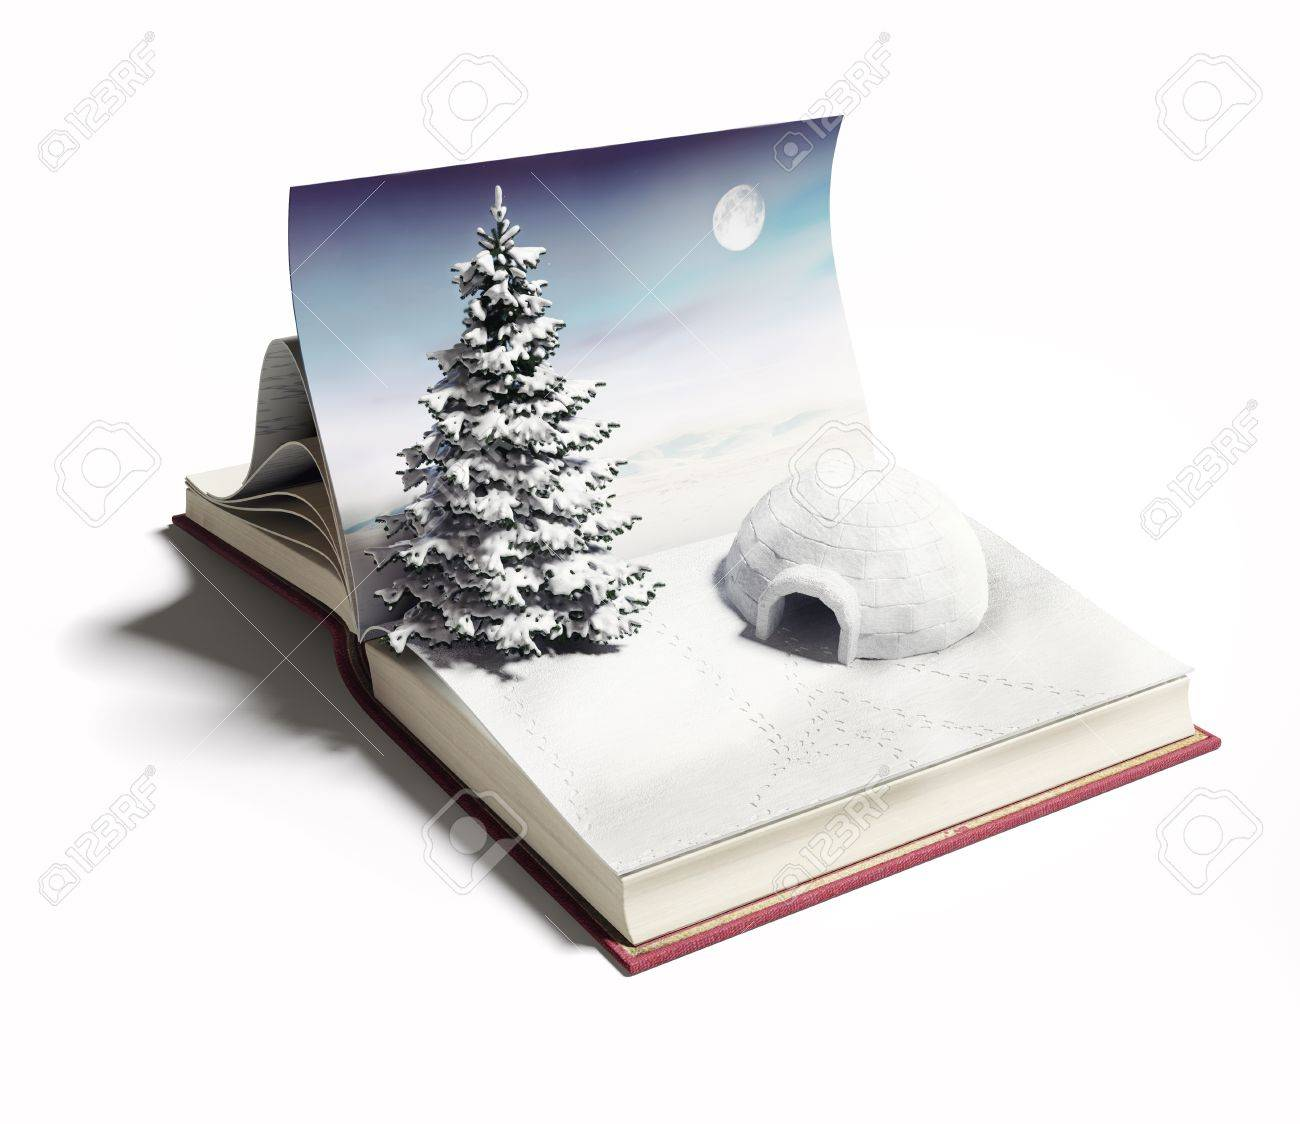 Igloo On The Open Book 3d Concept Stock Photo, Picture And Royalty ...